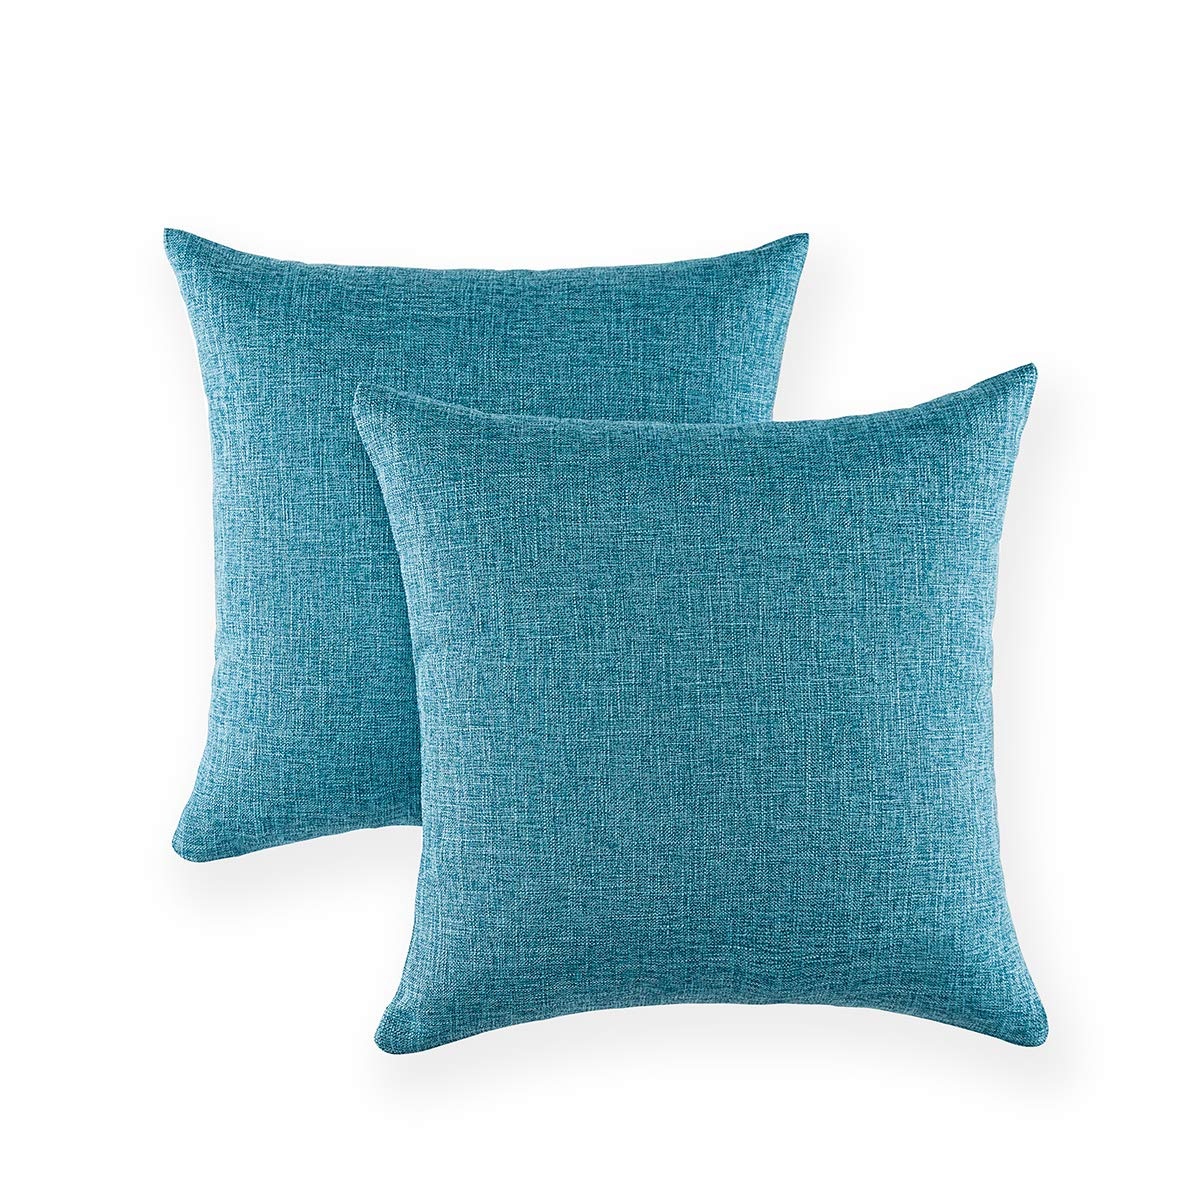 Xinrjojo Solid Color Decorative Cotton Linen Throw Pillow Case Cushion Cover Pillowcase for Couch Sofa Bed, 18 x 18 Inches, Set of 2- Navy